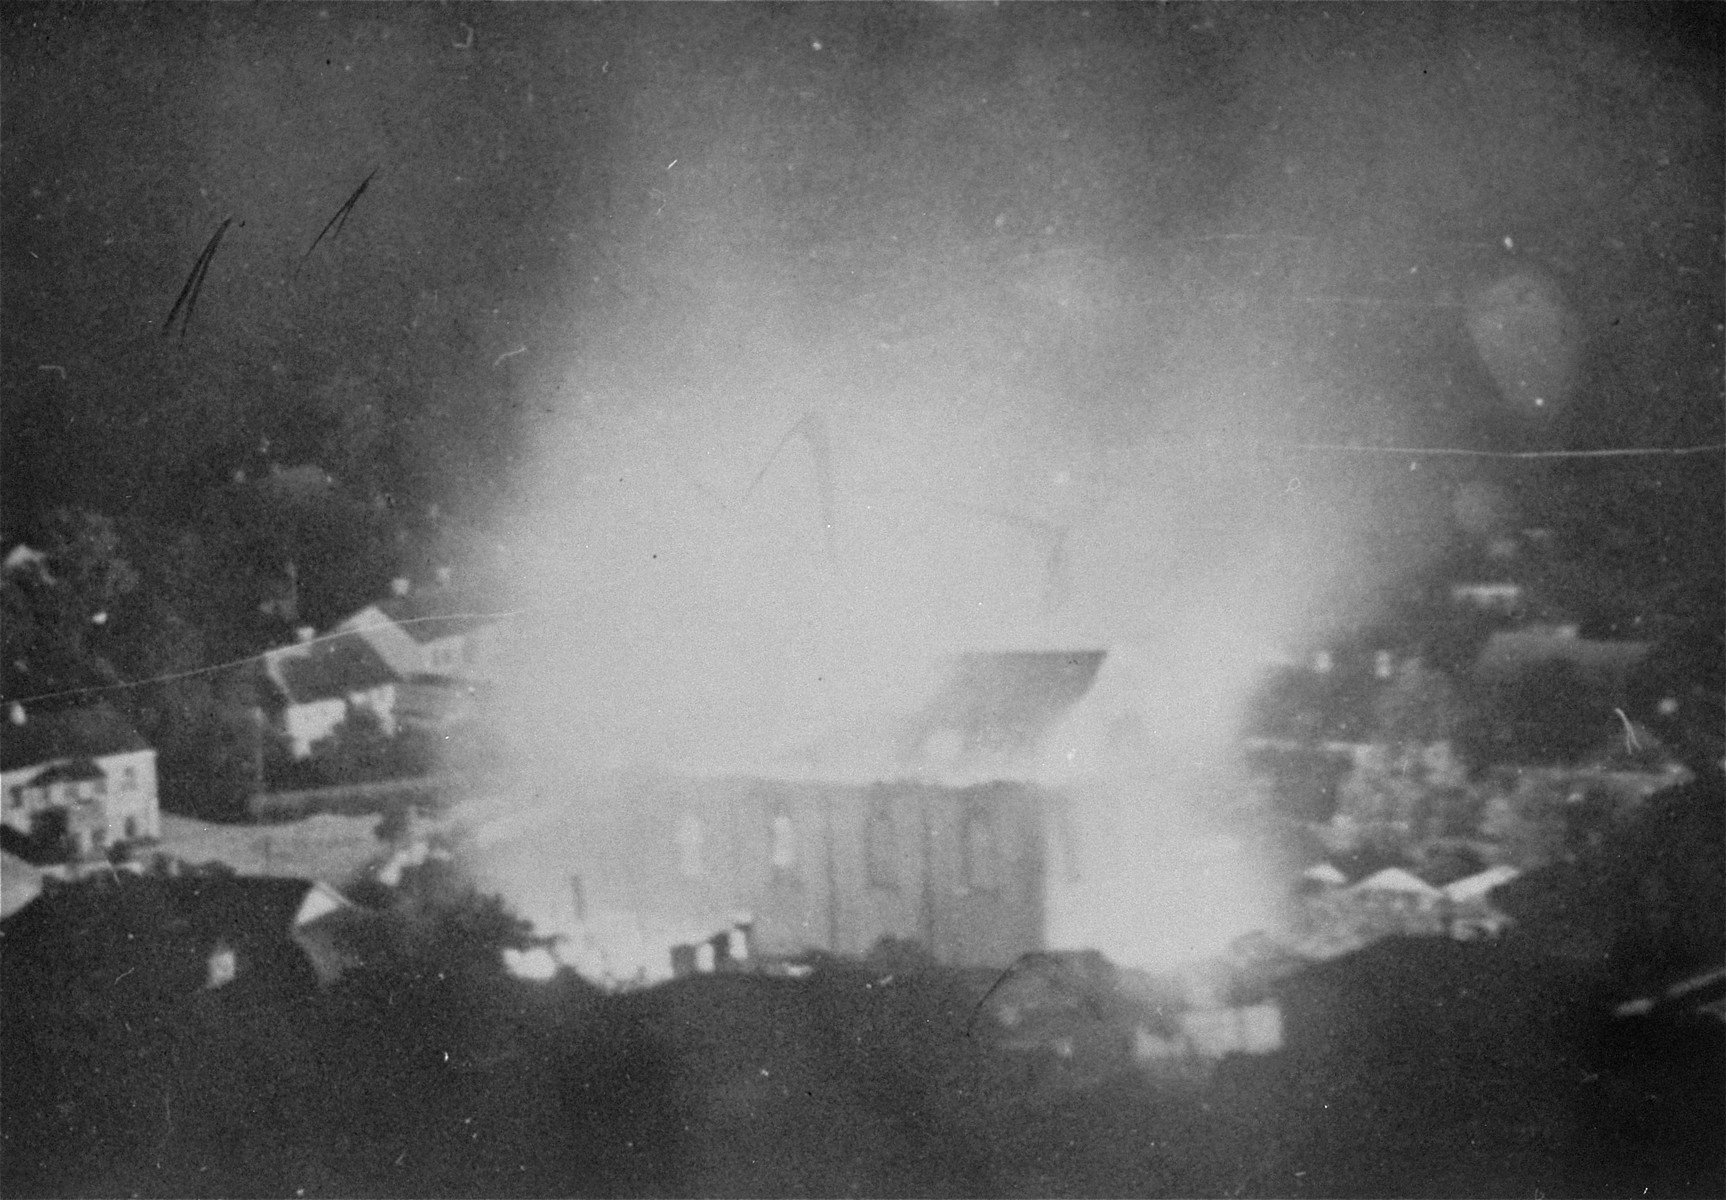 View of a burning synagogue in Krzemieniec.